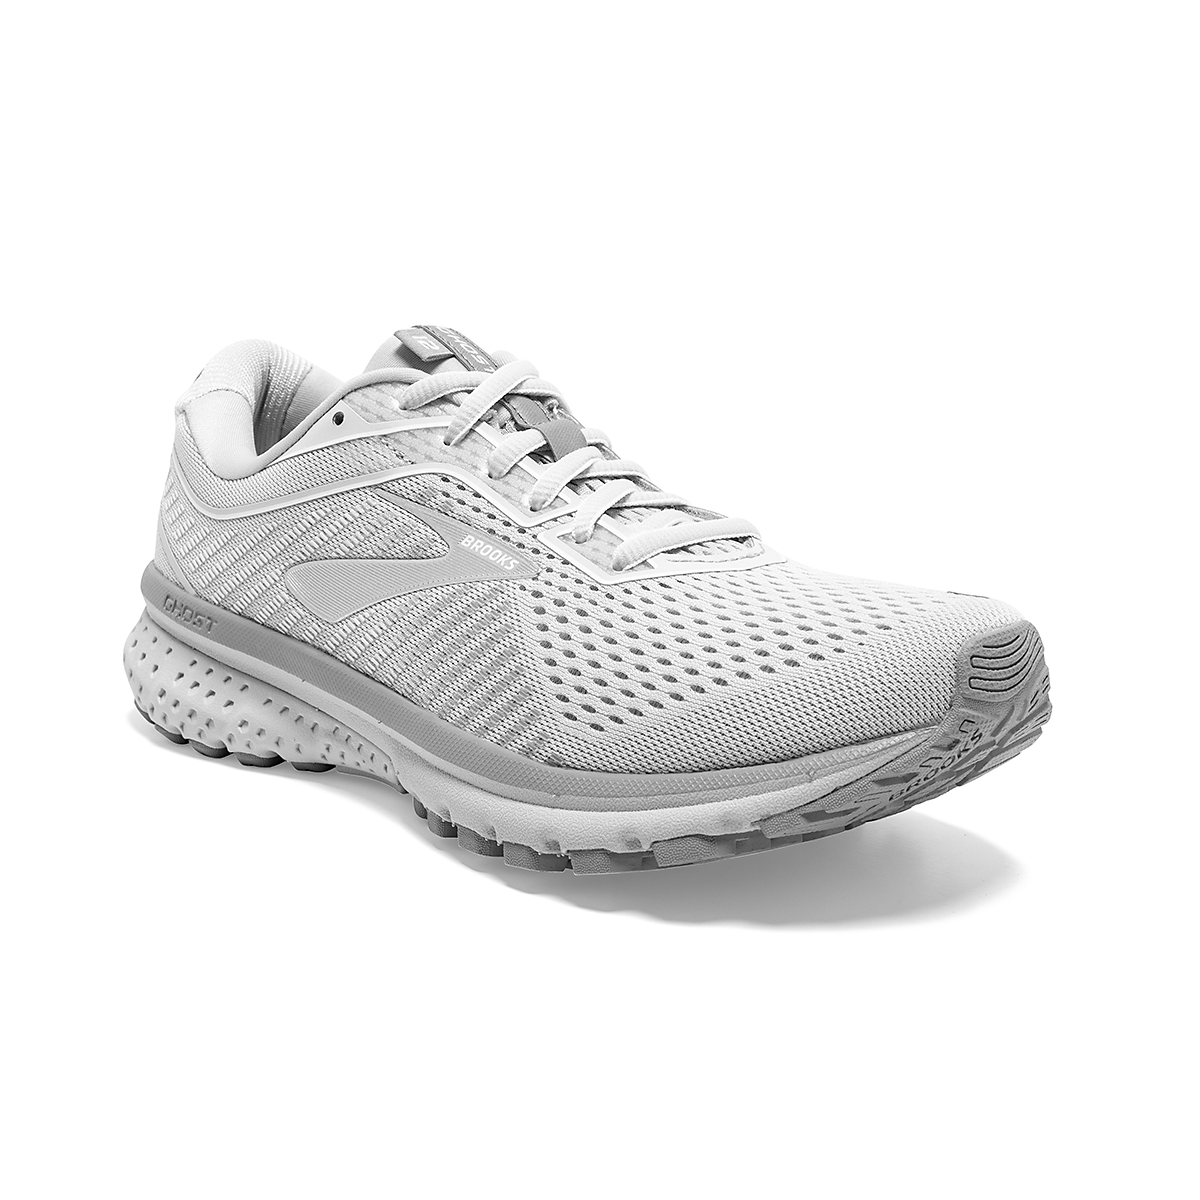 Women's Brooks Ghost 12 Running Shoe - Color: Oyster/Alloy/White - Size: 8.5 - Width: Regular, Oyster/Alloy/White, large, image 2